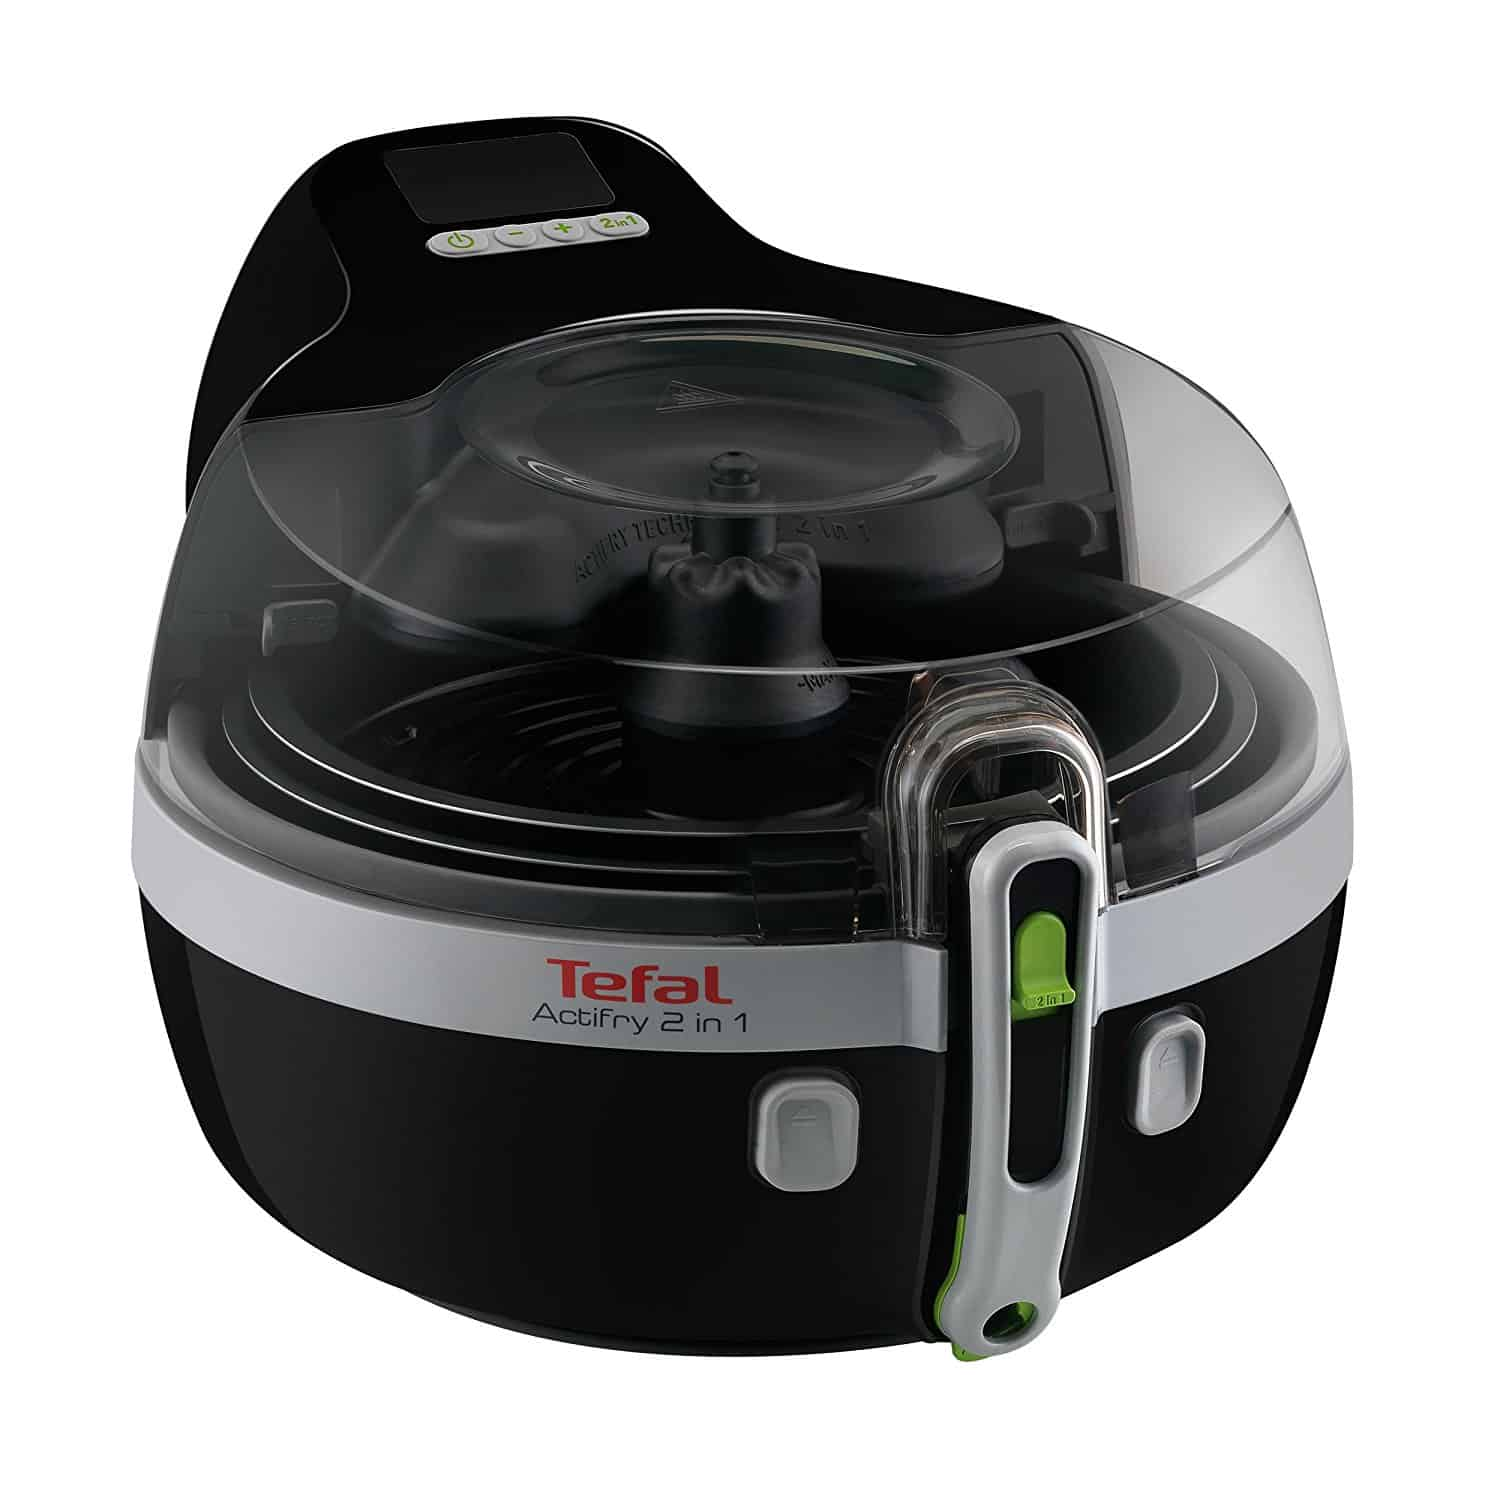 tefal actifry yv960130 2in1 hei luft fritteuse haushalts helfer. Black Bedroom Furniture Sets. Home Design Ideas